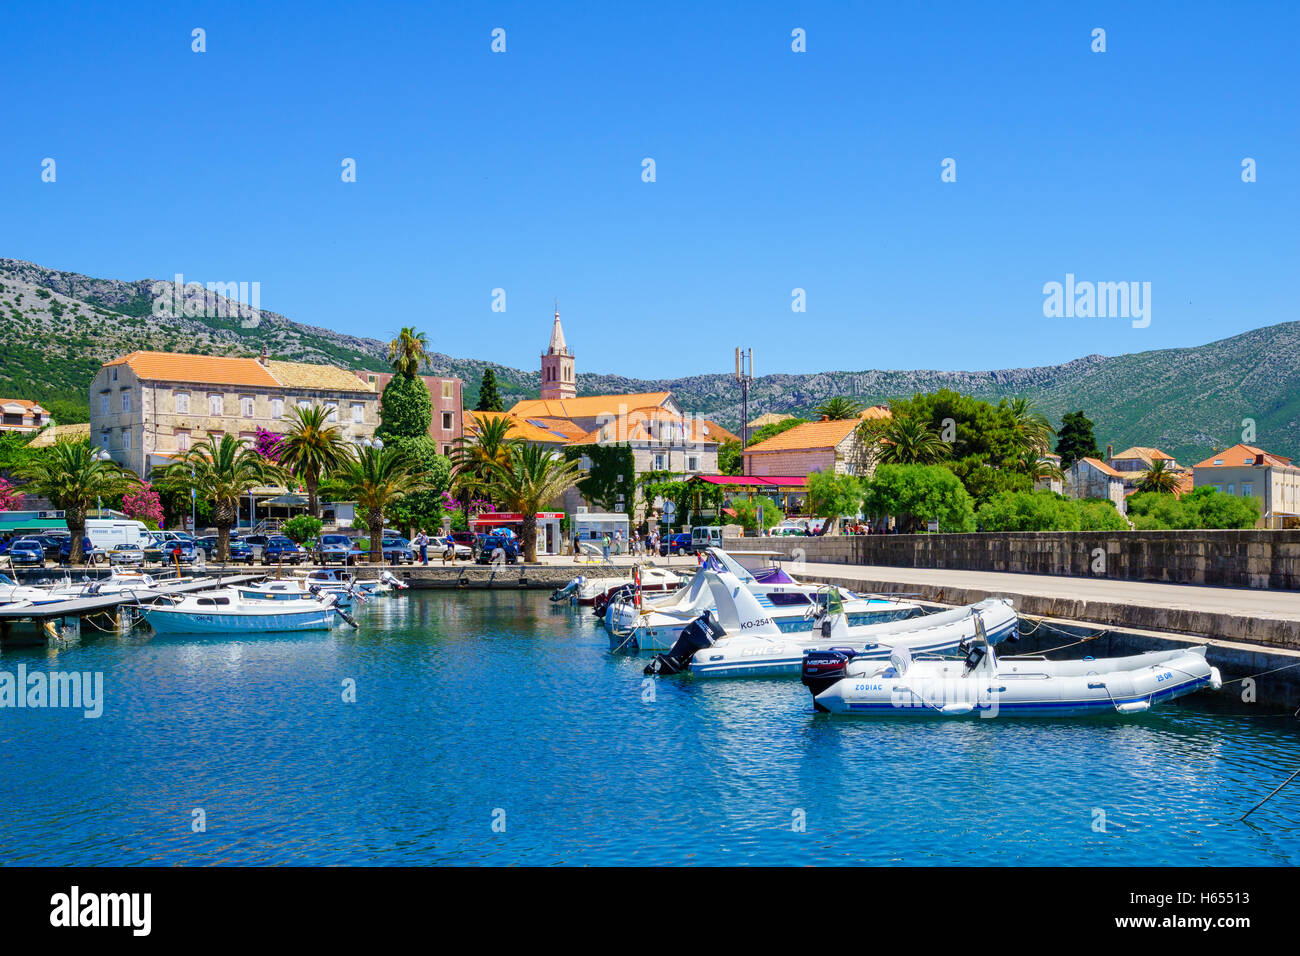 Orebic, CROATIA - JUNE 25, 2015: Scene of the port, and the town center, with locals and tourists, in Orebic, Croatia - Stock Image